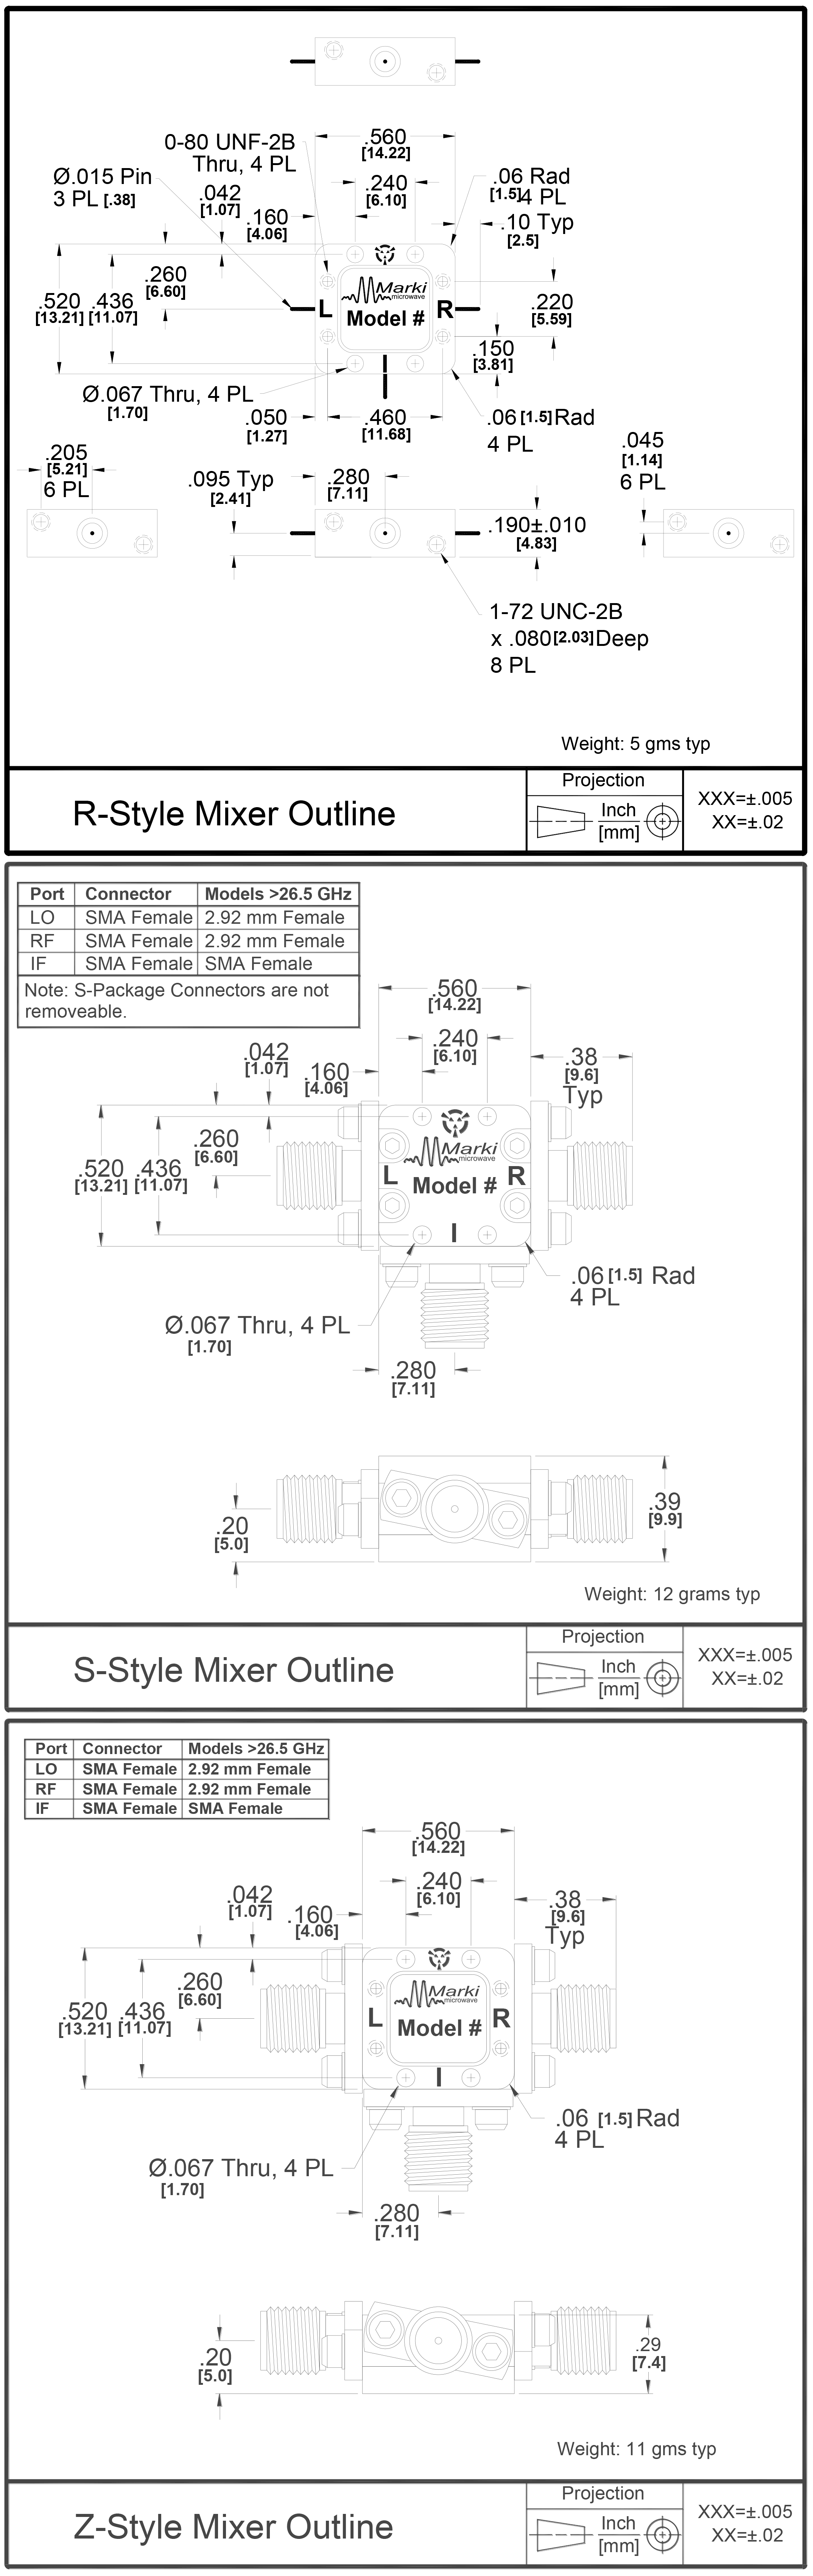 M2-0219 Mixer Package Diagram